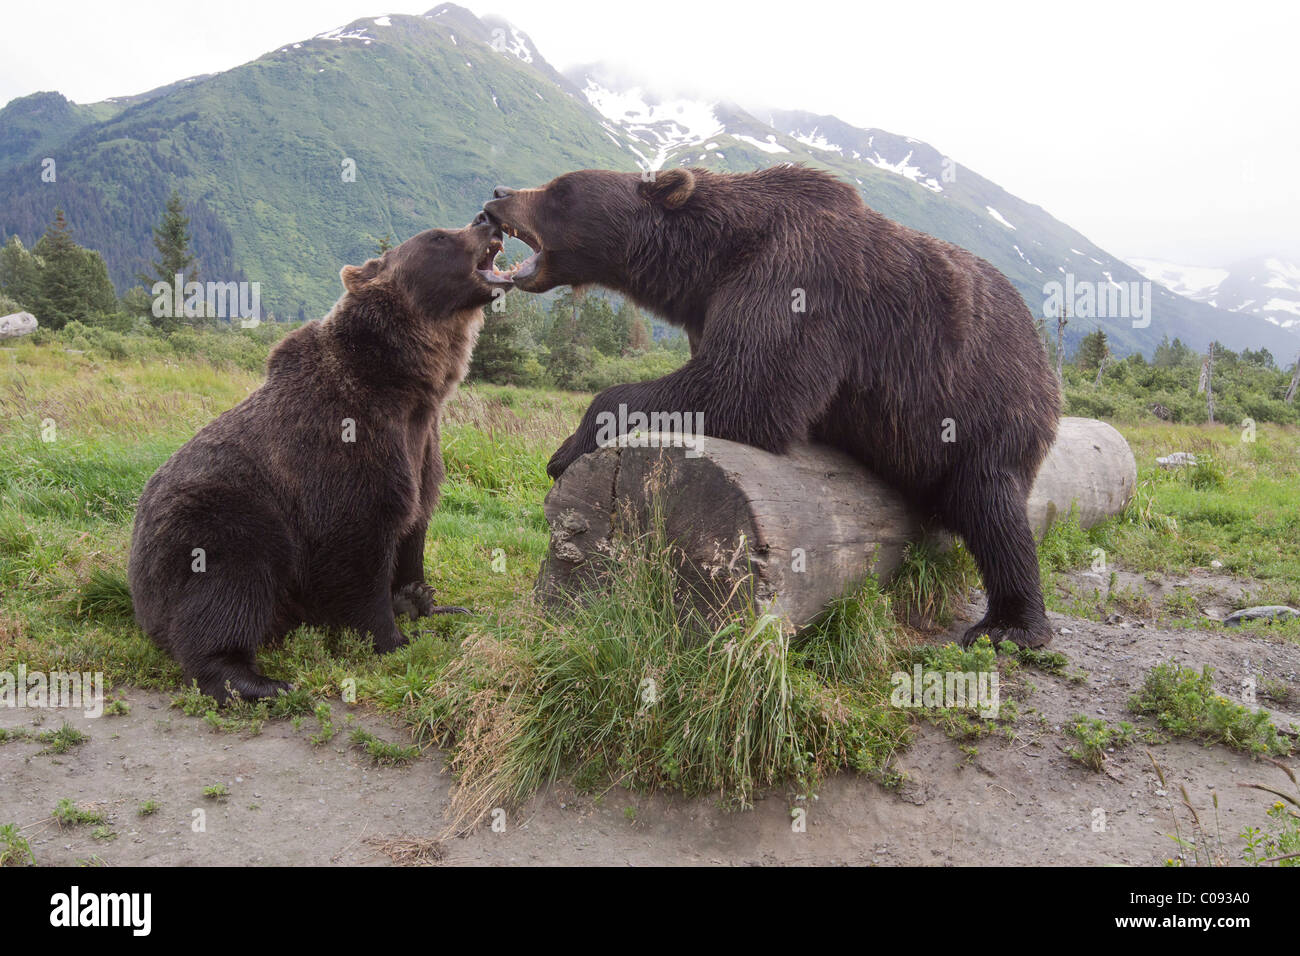 A pair of captive Brown bears snarl and touch open mouths over a log at Alaska Wildlife Conservation Center, Alaska. - Stock Image